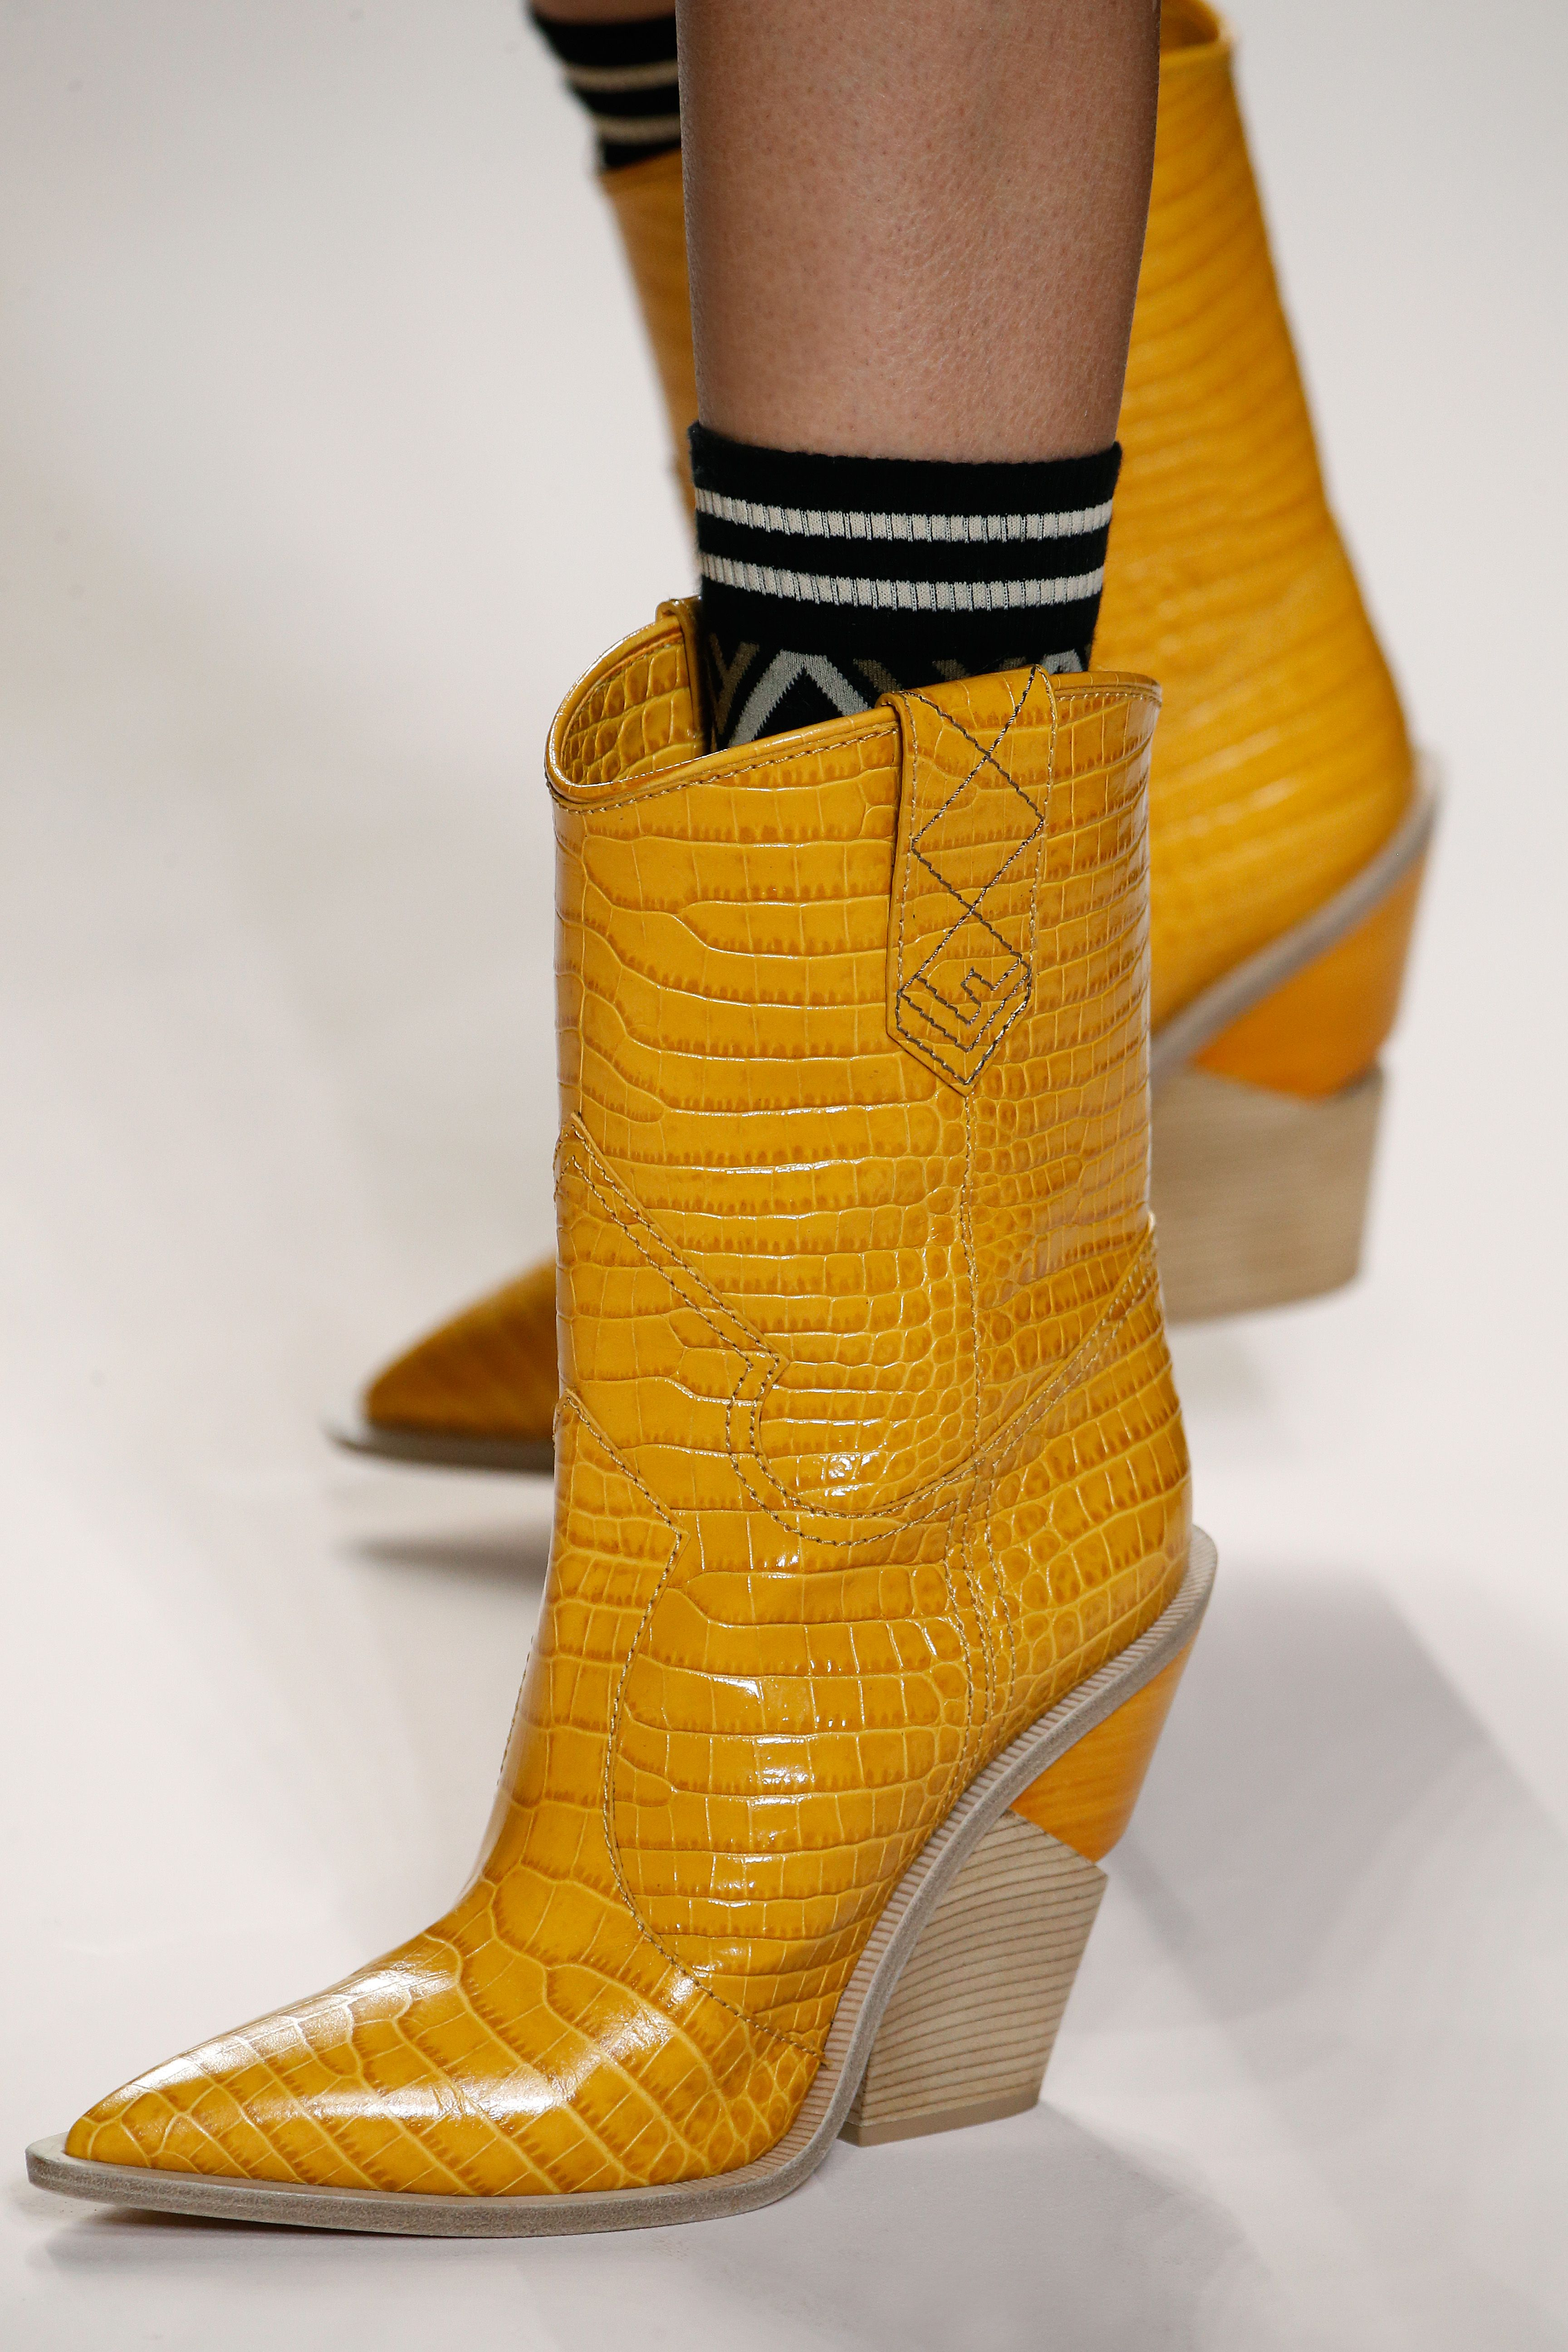 4a87ba85076 Fendi Fall/Winter 2018-19 Fashion Show | P.S.- Sole-ful Shoes ...